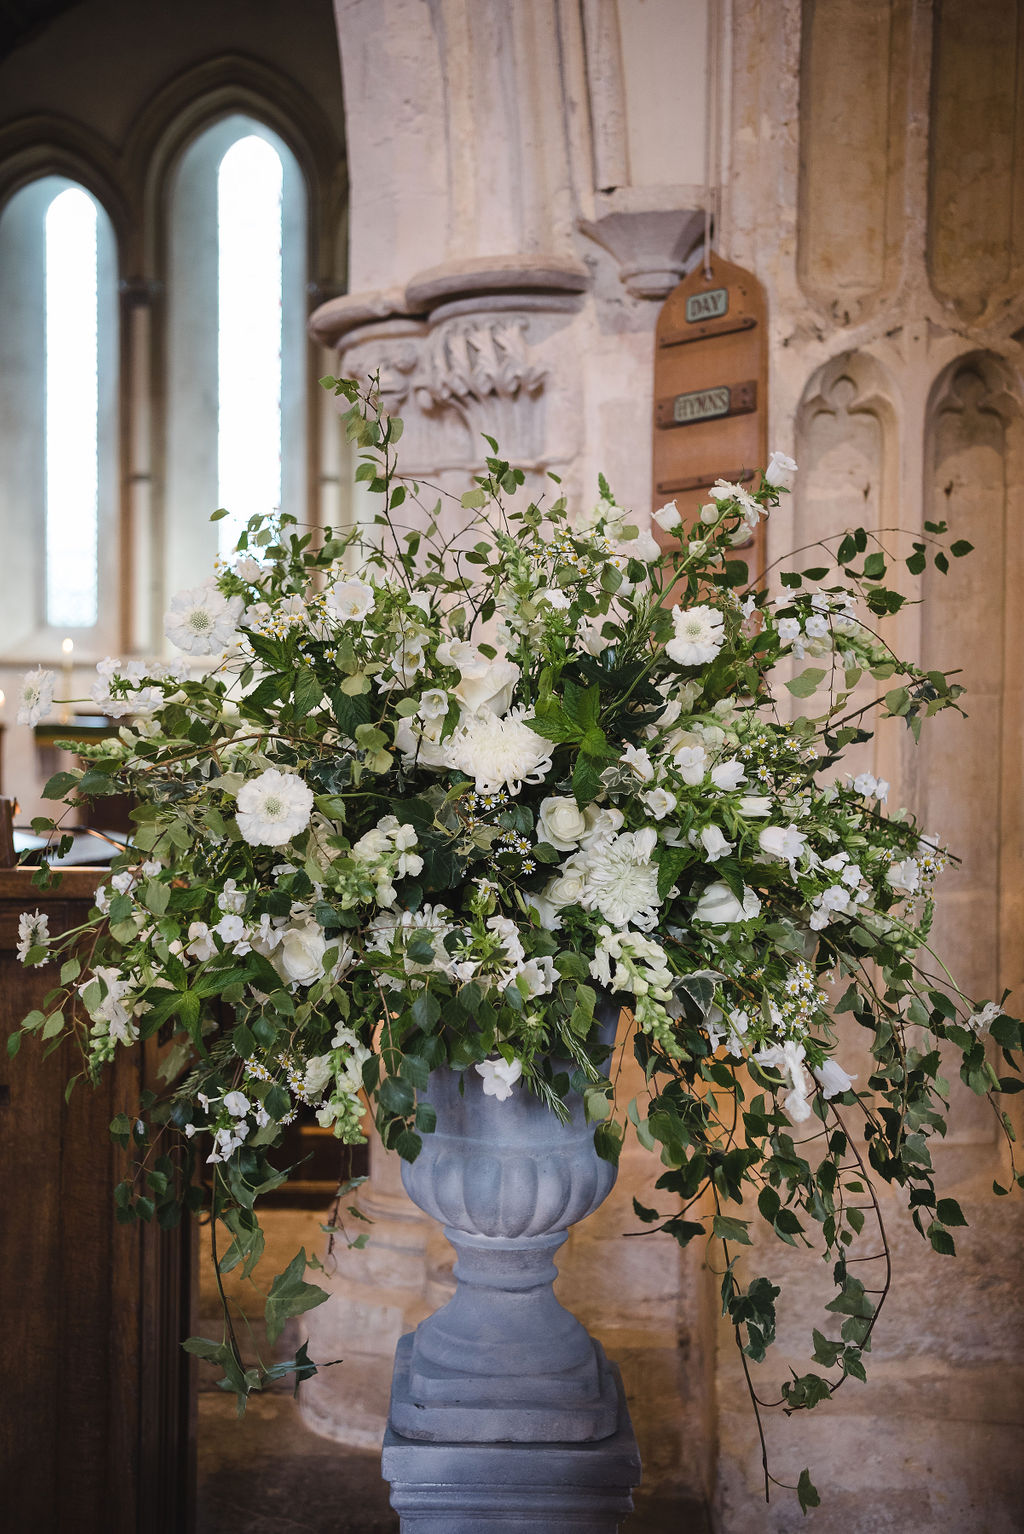 Church ceremony, church flowers, church wedding, white wedding flowers, pew ends, aisle flowers, garden flowers, luxury wedding flowers, pedestal arrangement, Dorset Hampshire